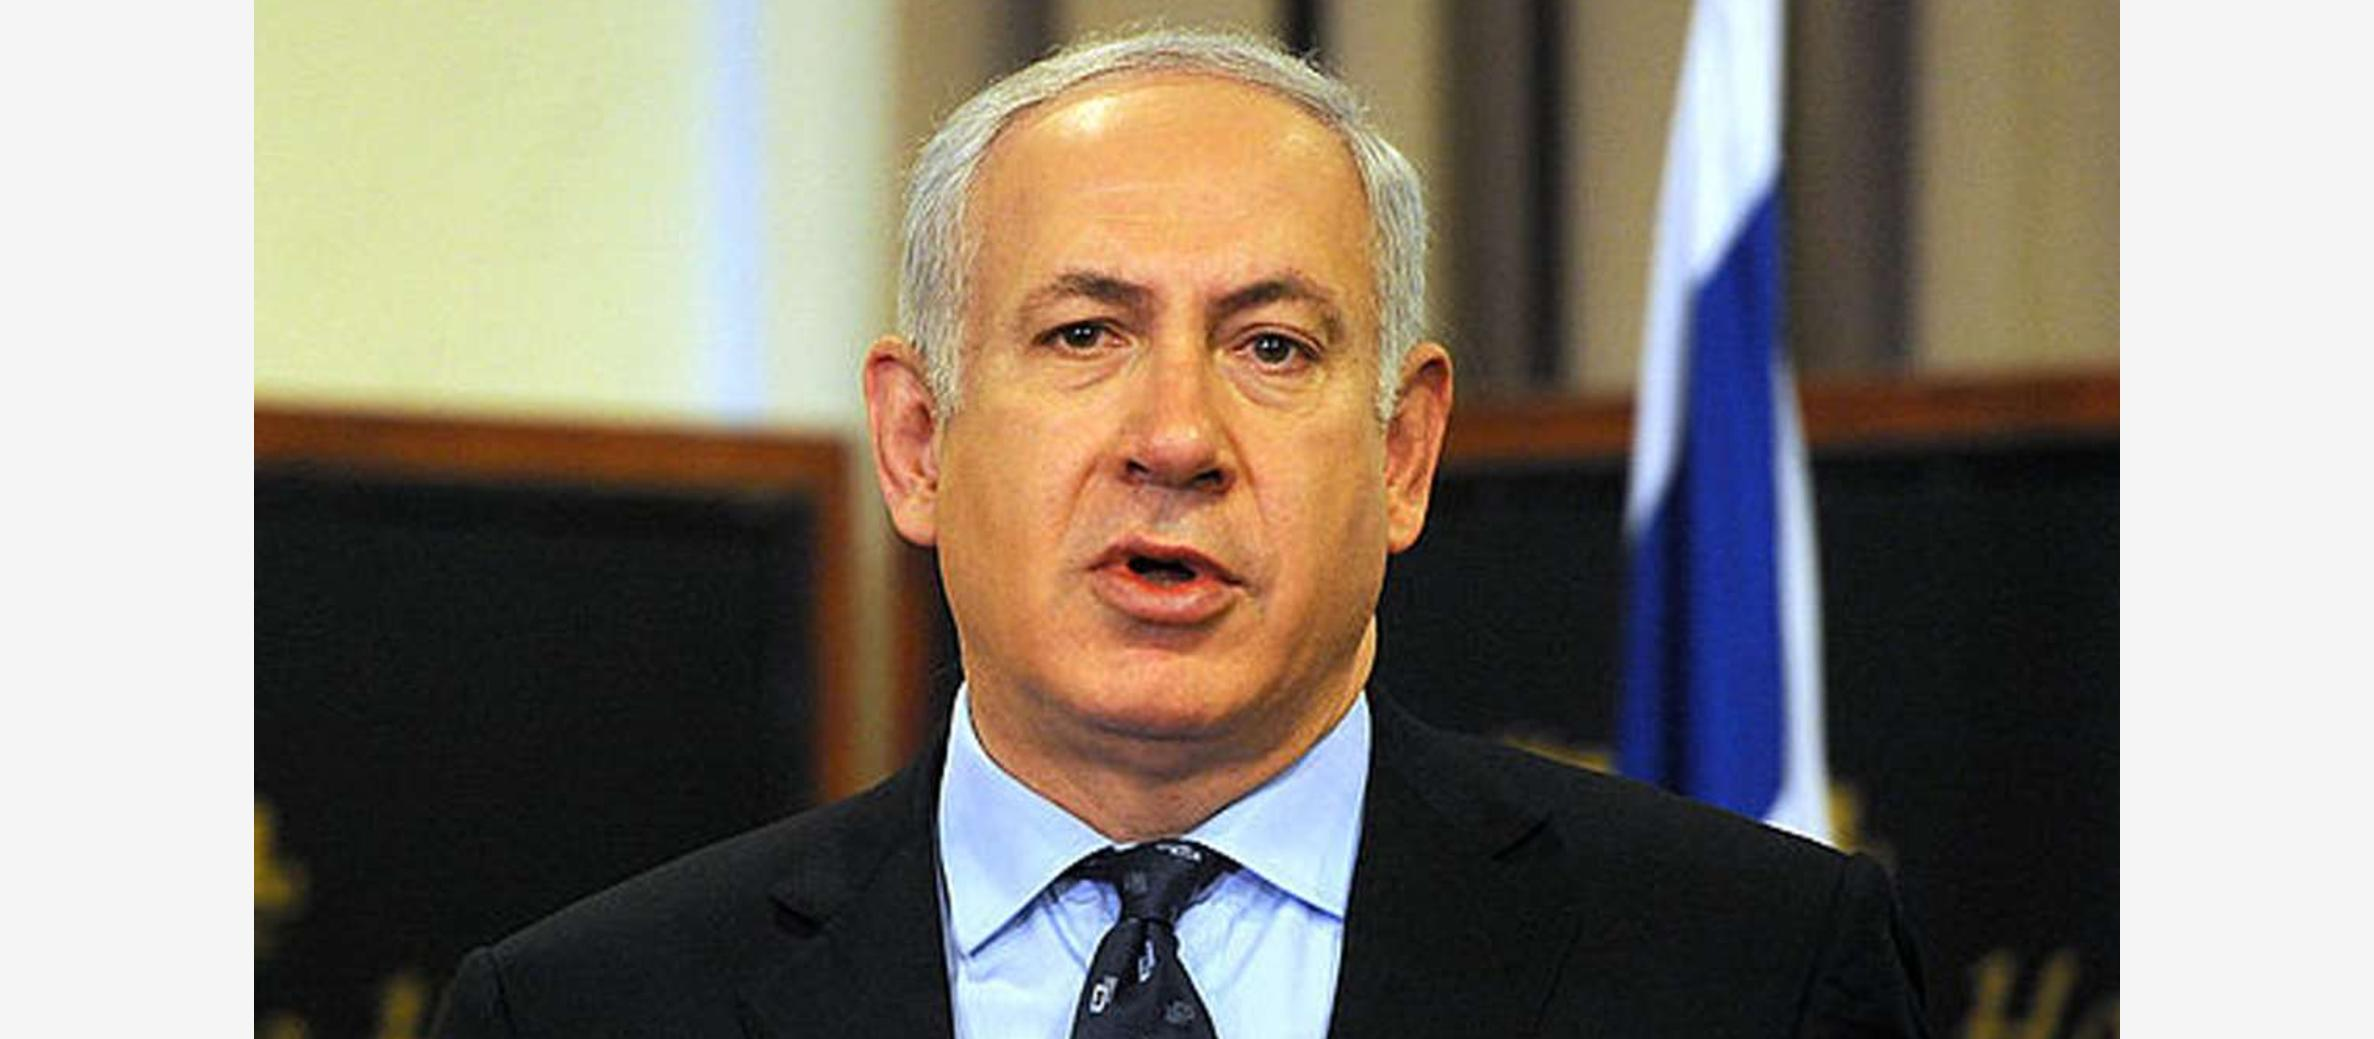 PM Netanyahu to visit the UK – Show your support for Israel